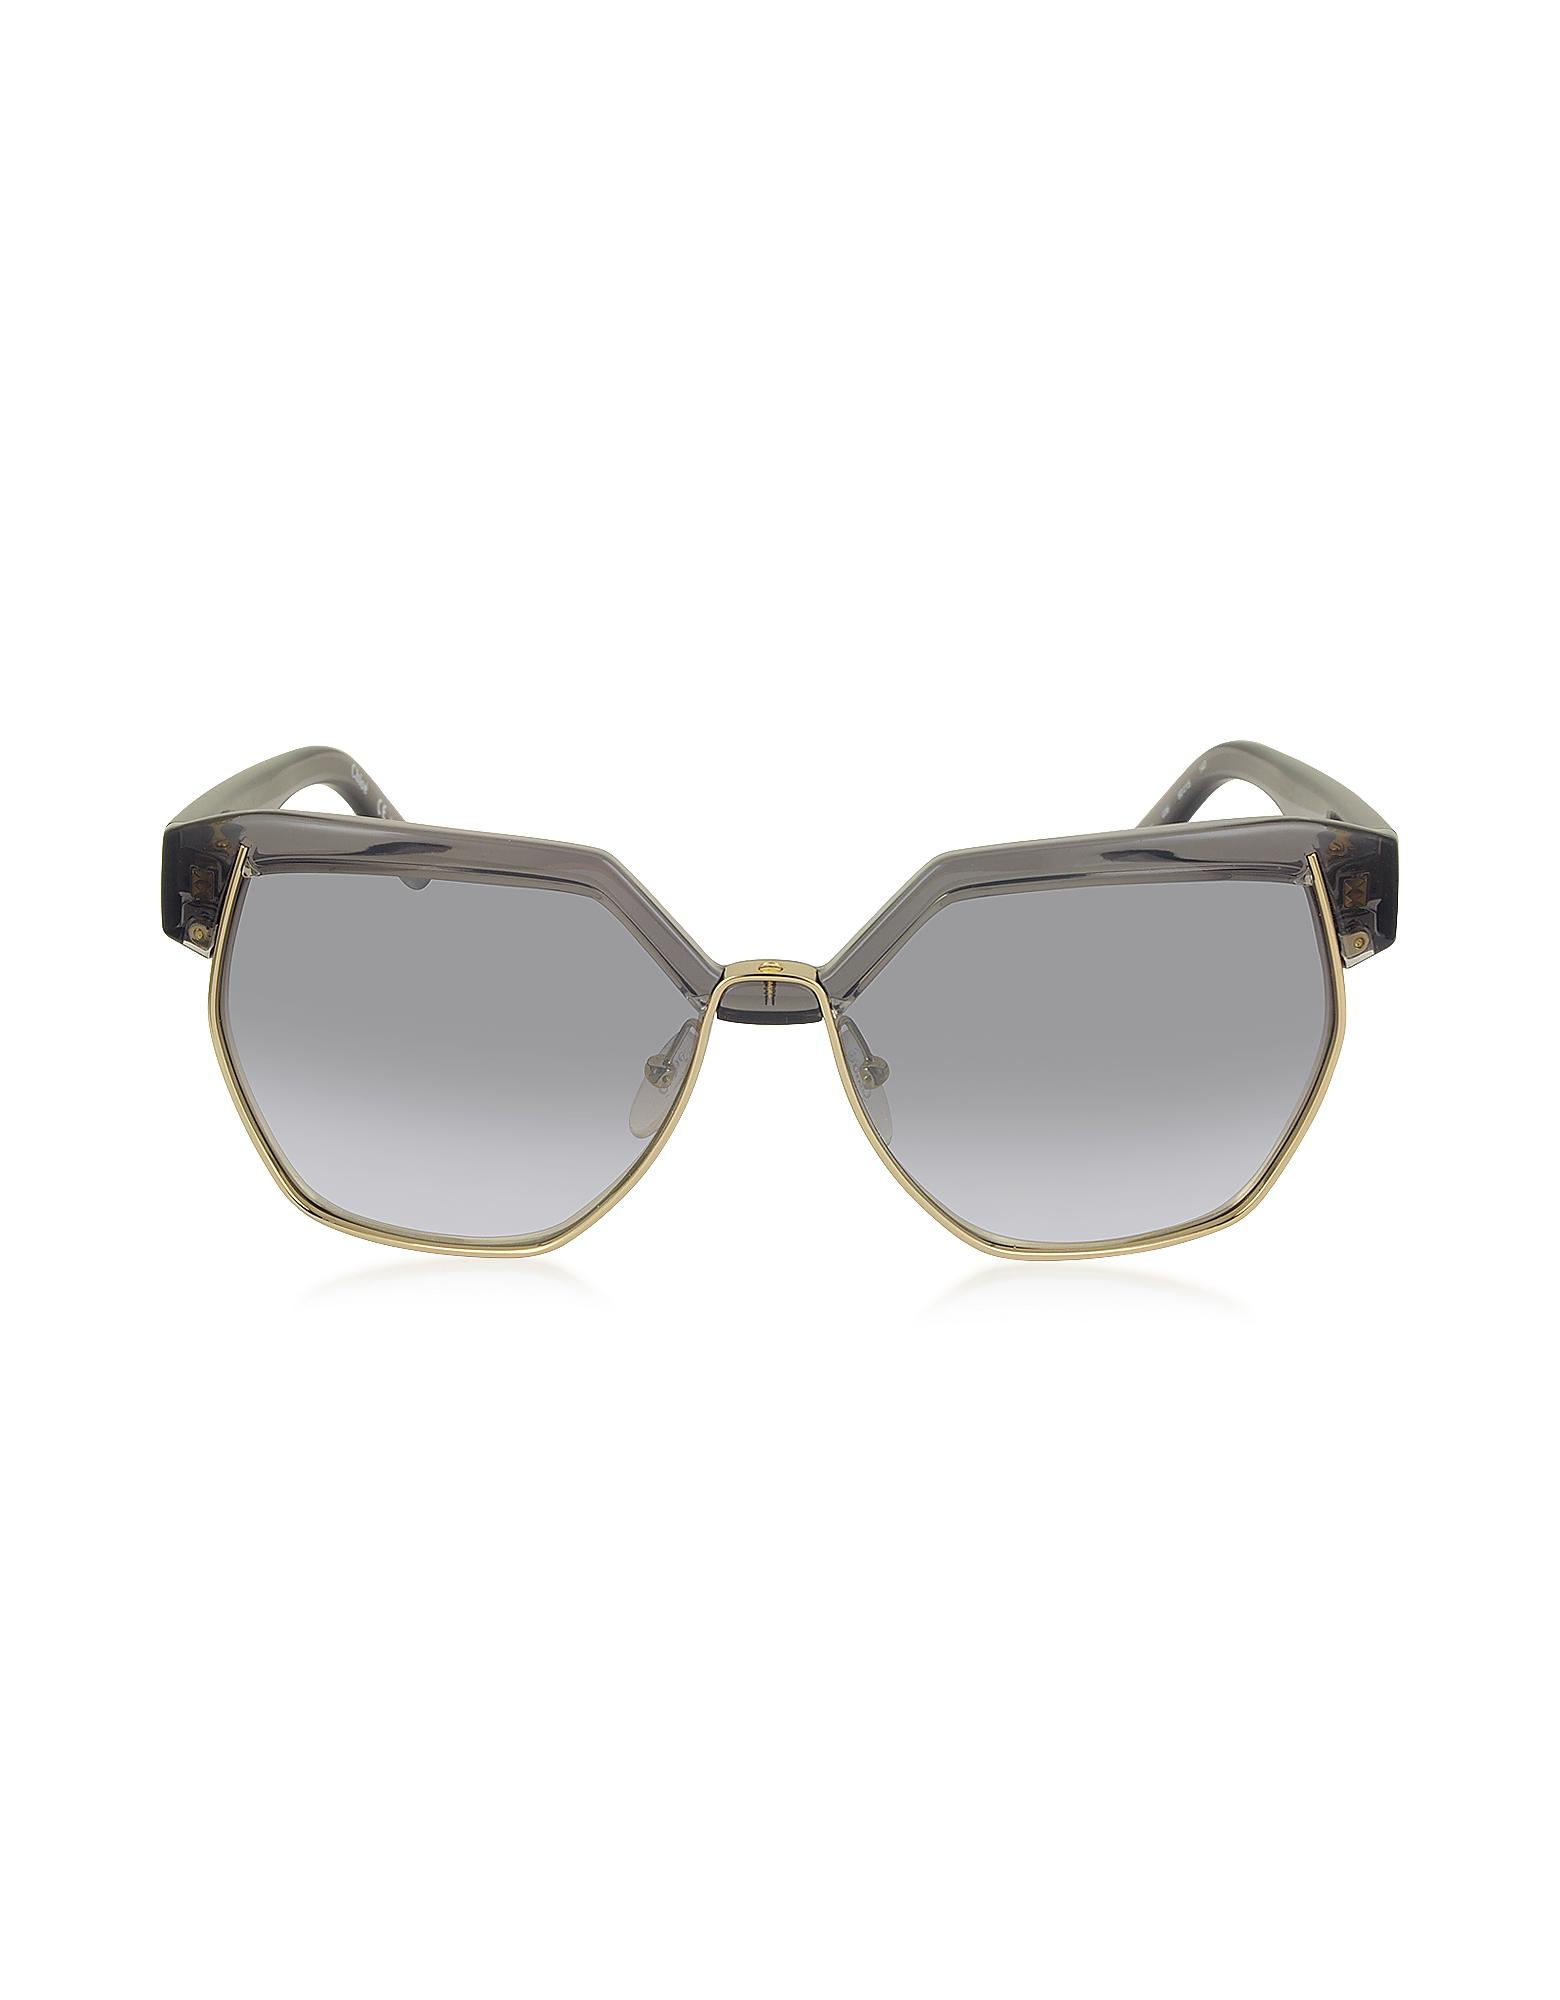 a882d6dca659d Lyst - Chloé Dafne Ce 665s 036 Gray Acetate And Gold Metal Geometric ...